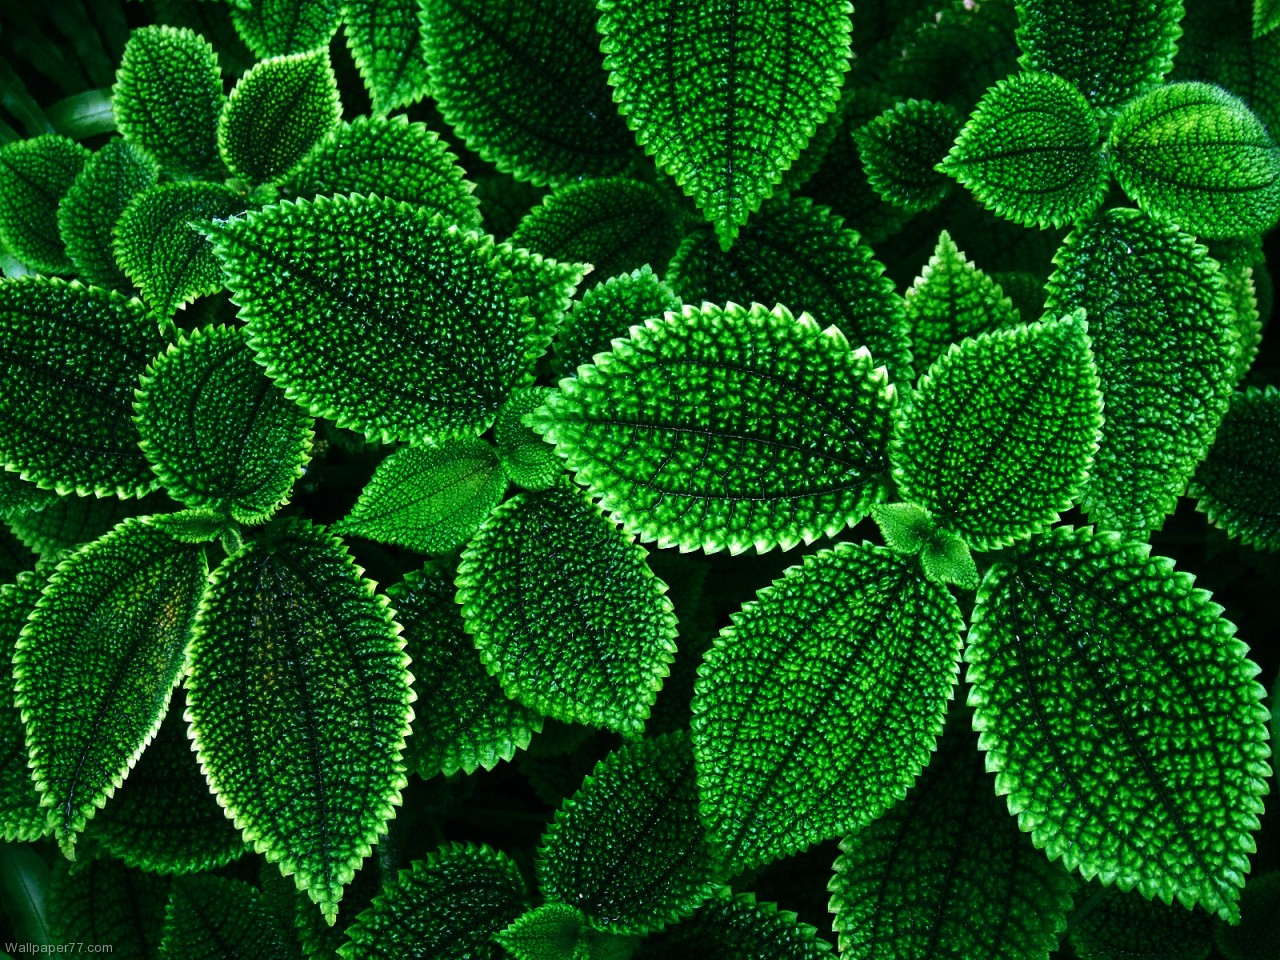 Green 1280x960 pixels Wallpapers tagged Flower Wallpapers Flowers 1280x960